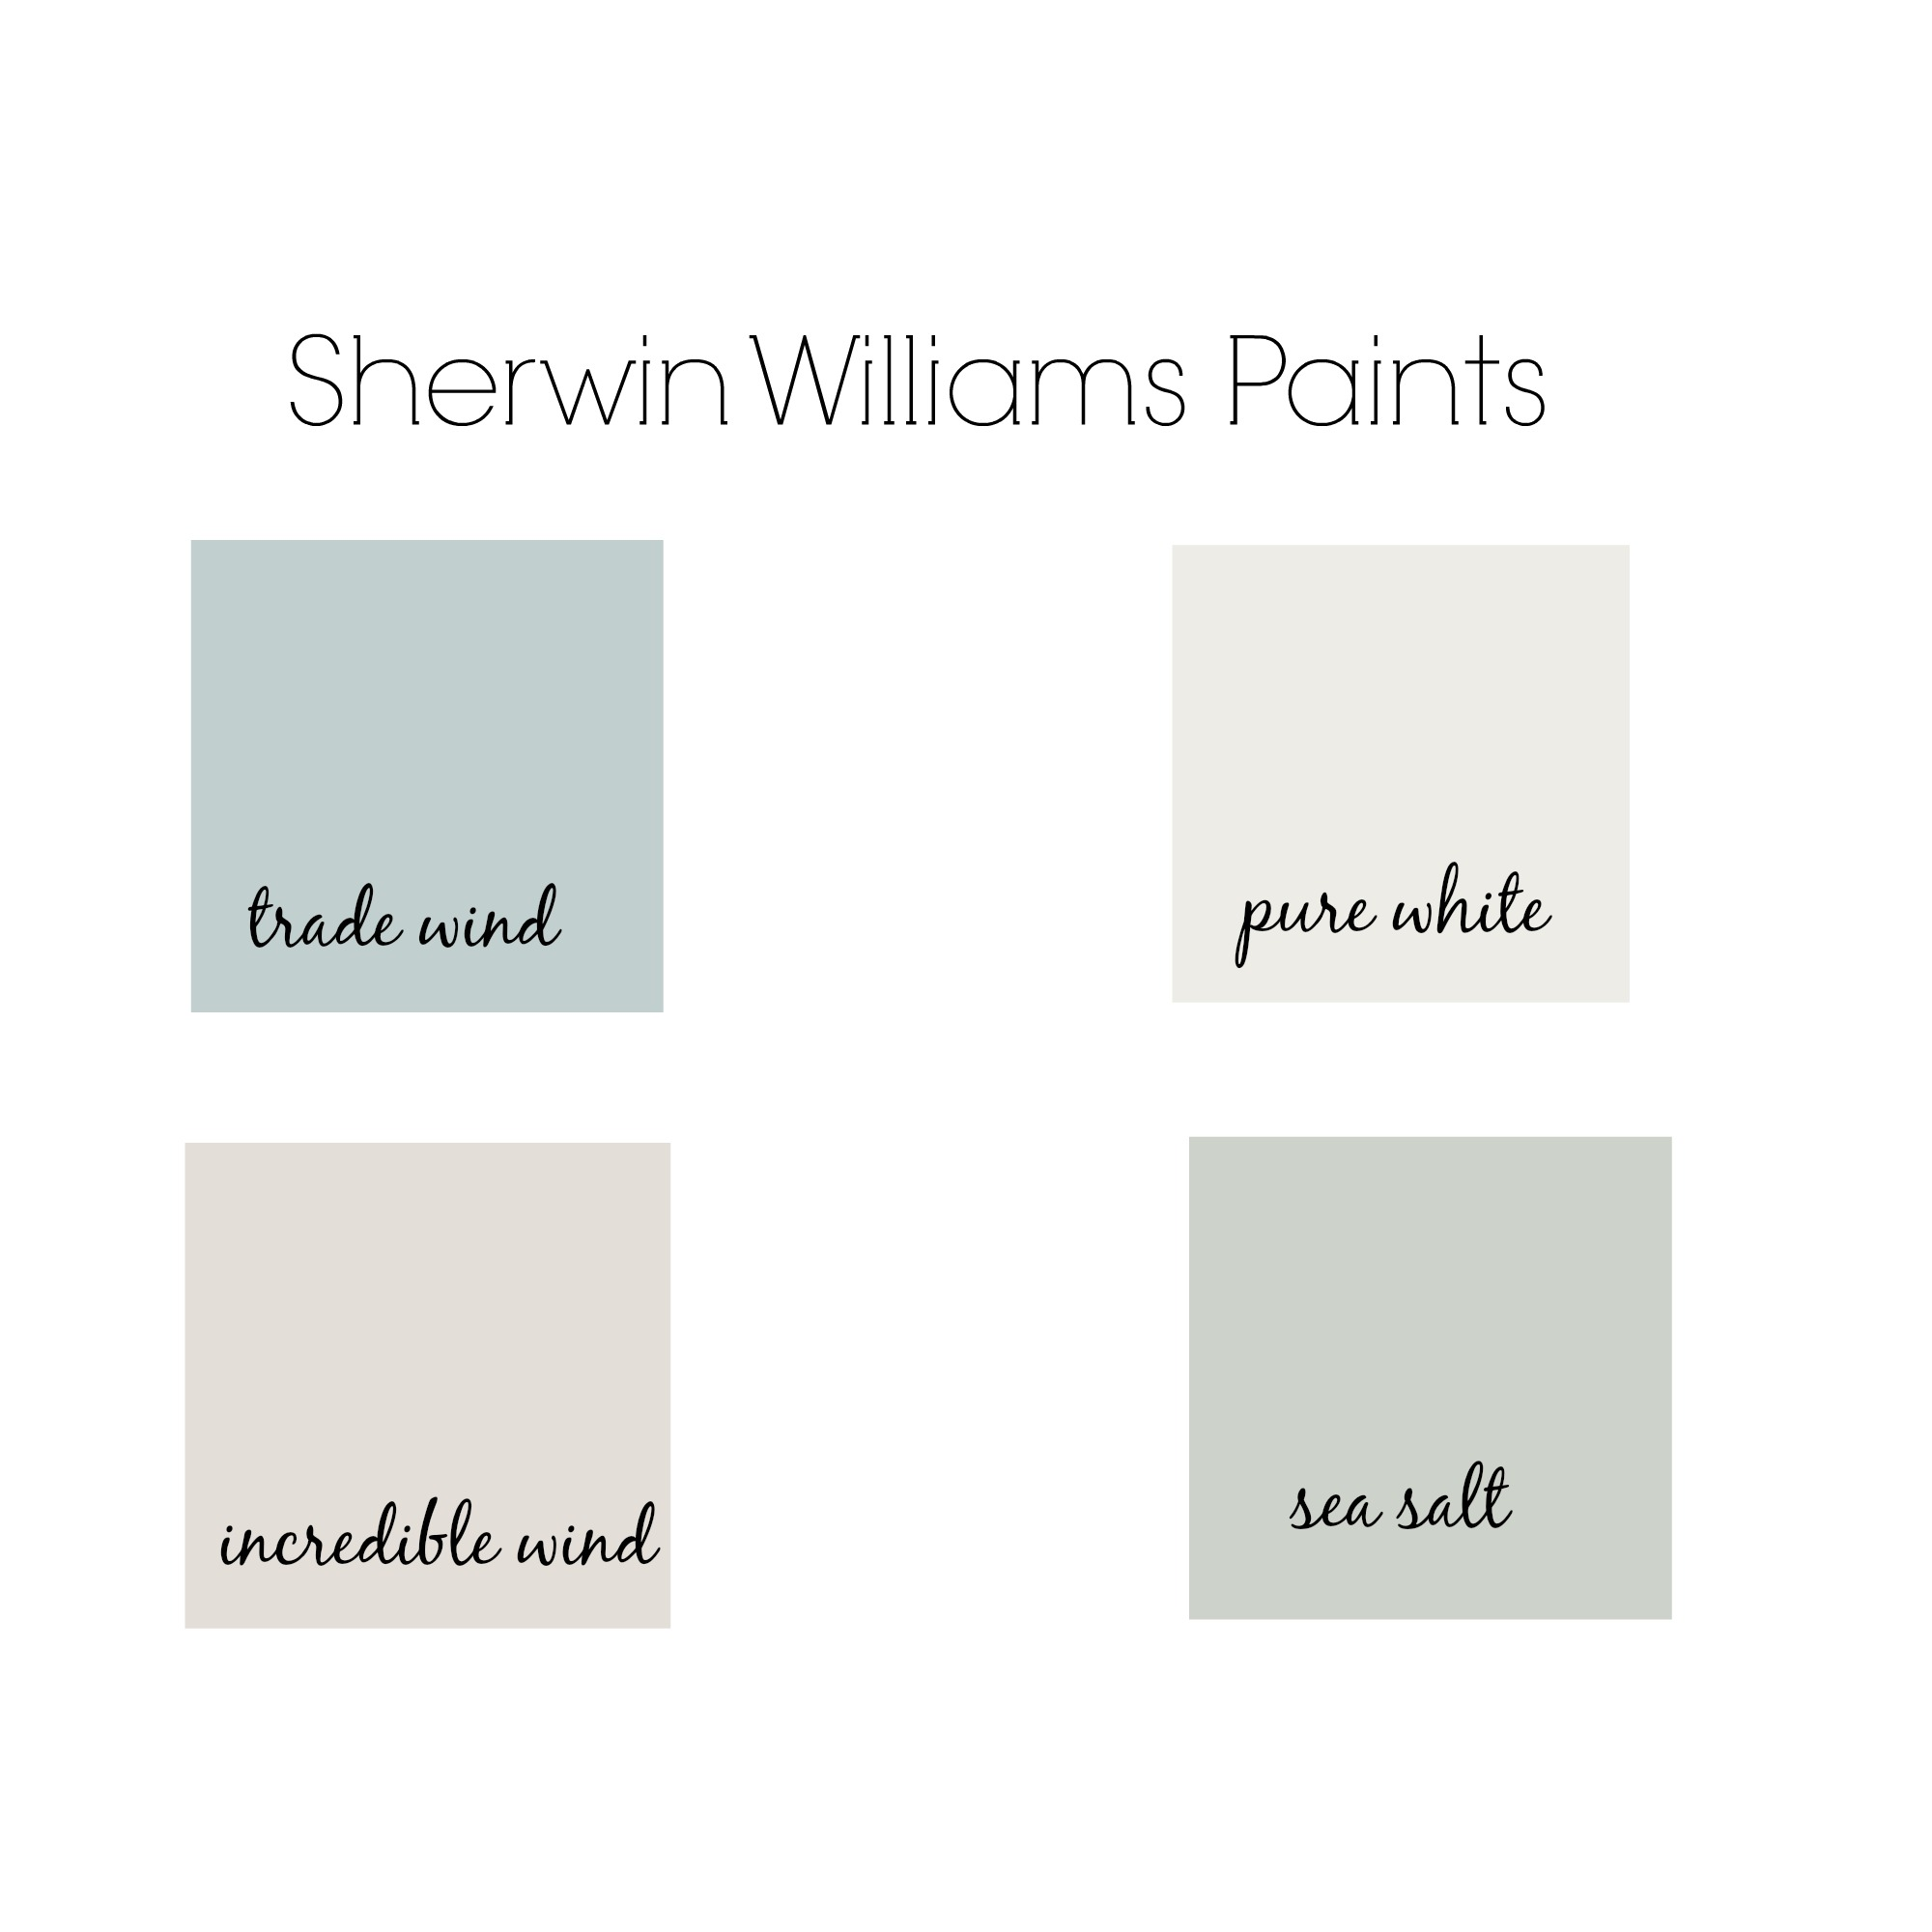 Sherwin williams paint seeking lavendar lane for Sherwin williams color of the month october 2017